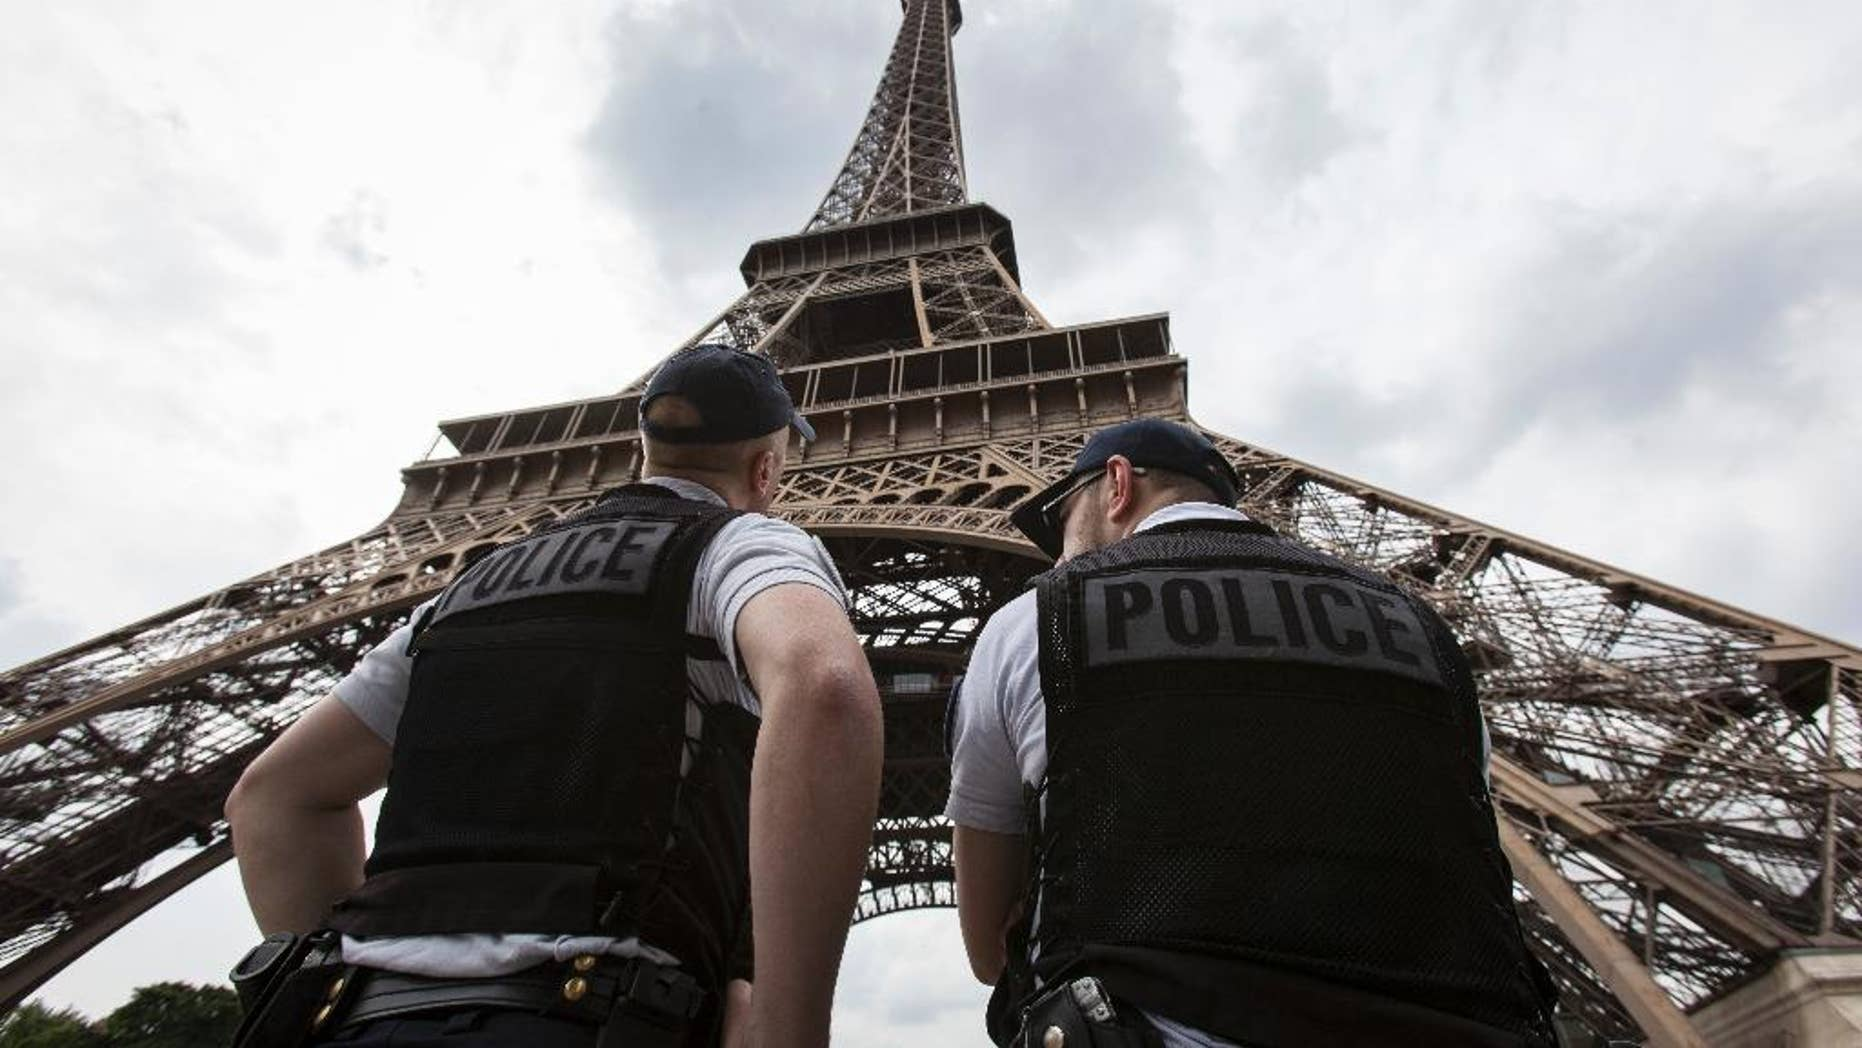 FILE- In this Friday, June 10, 2016 file photo, French riot police officers patrol under the Eiffel Tower, near the entrance of the soccer fan zone, prior to the Euro 2016 Group A soccer match between France and Romania, in Paris. Paris authorities say Thursday, Feb. 9, 2017, they are proposing to replace the metal security fencing around the Eiffel Tower with a more aesthetic glass wall. (AP Photo/Kamil Zihnioglu, File)